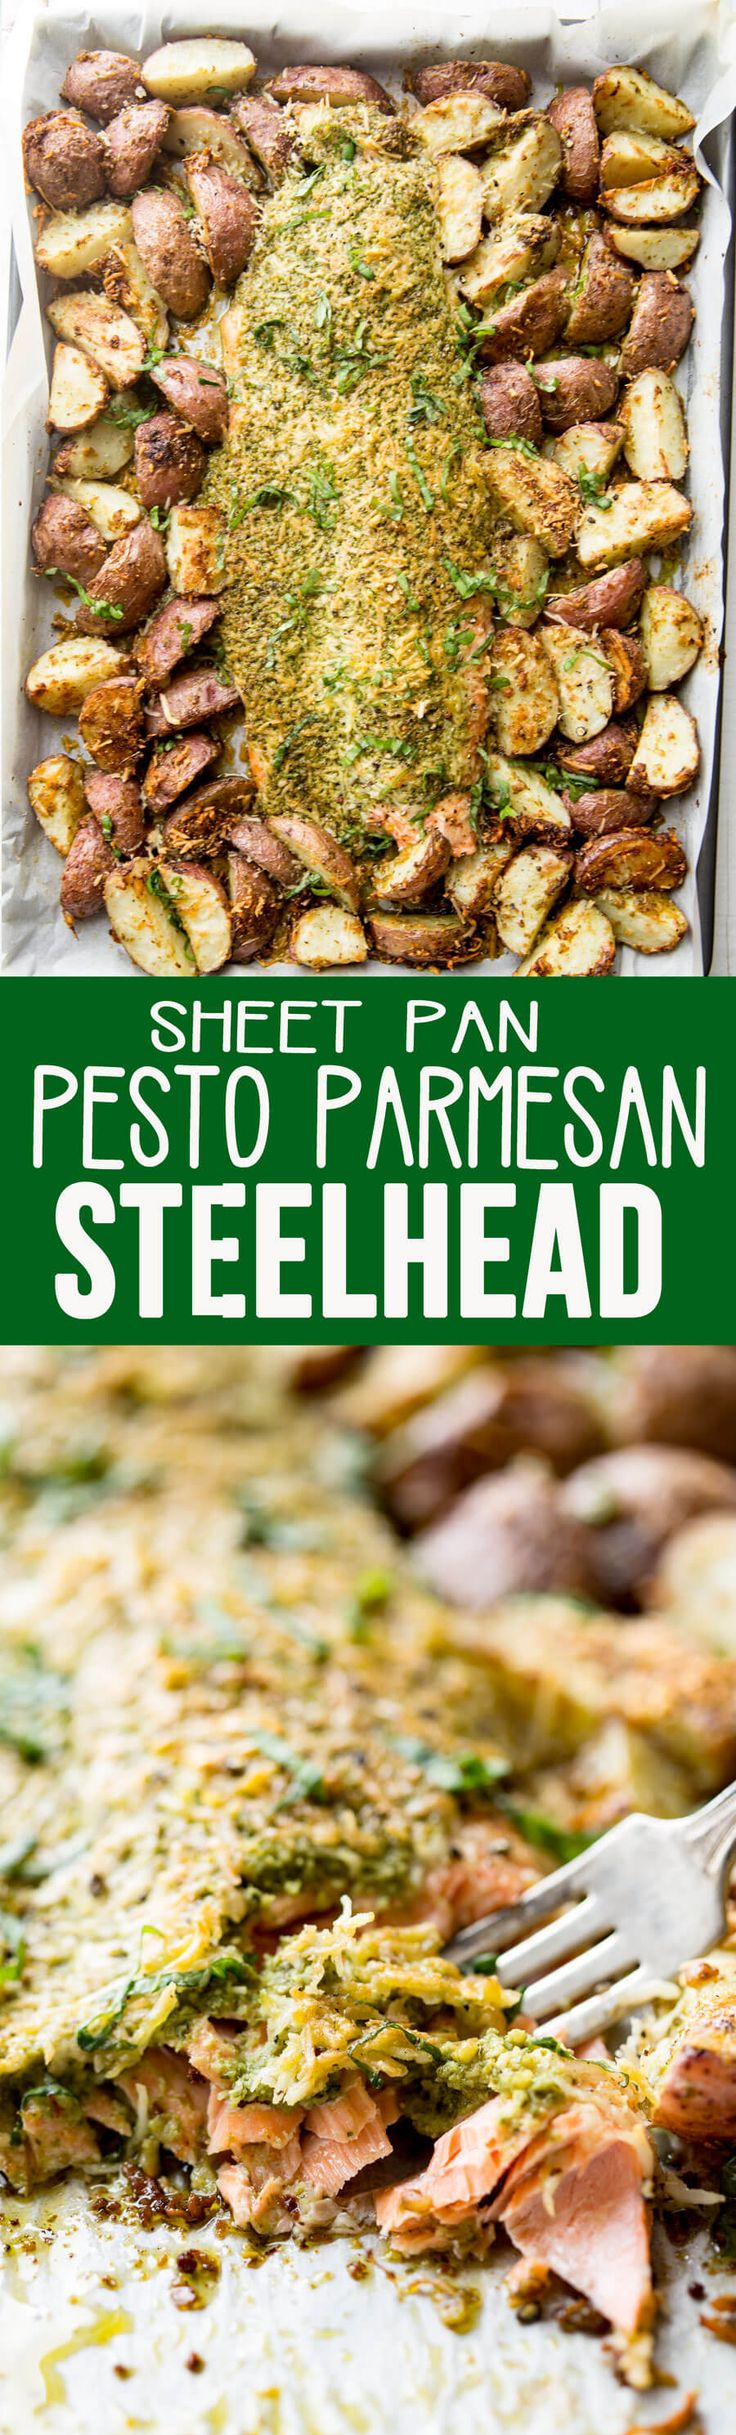 Parmesan Pesto Steelhead & Roasted Potatoes is a fabulous dinner recipe that will stay in the family for years! #ad #relativerace